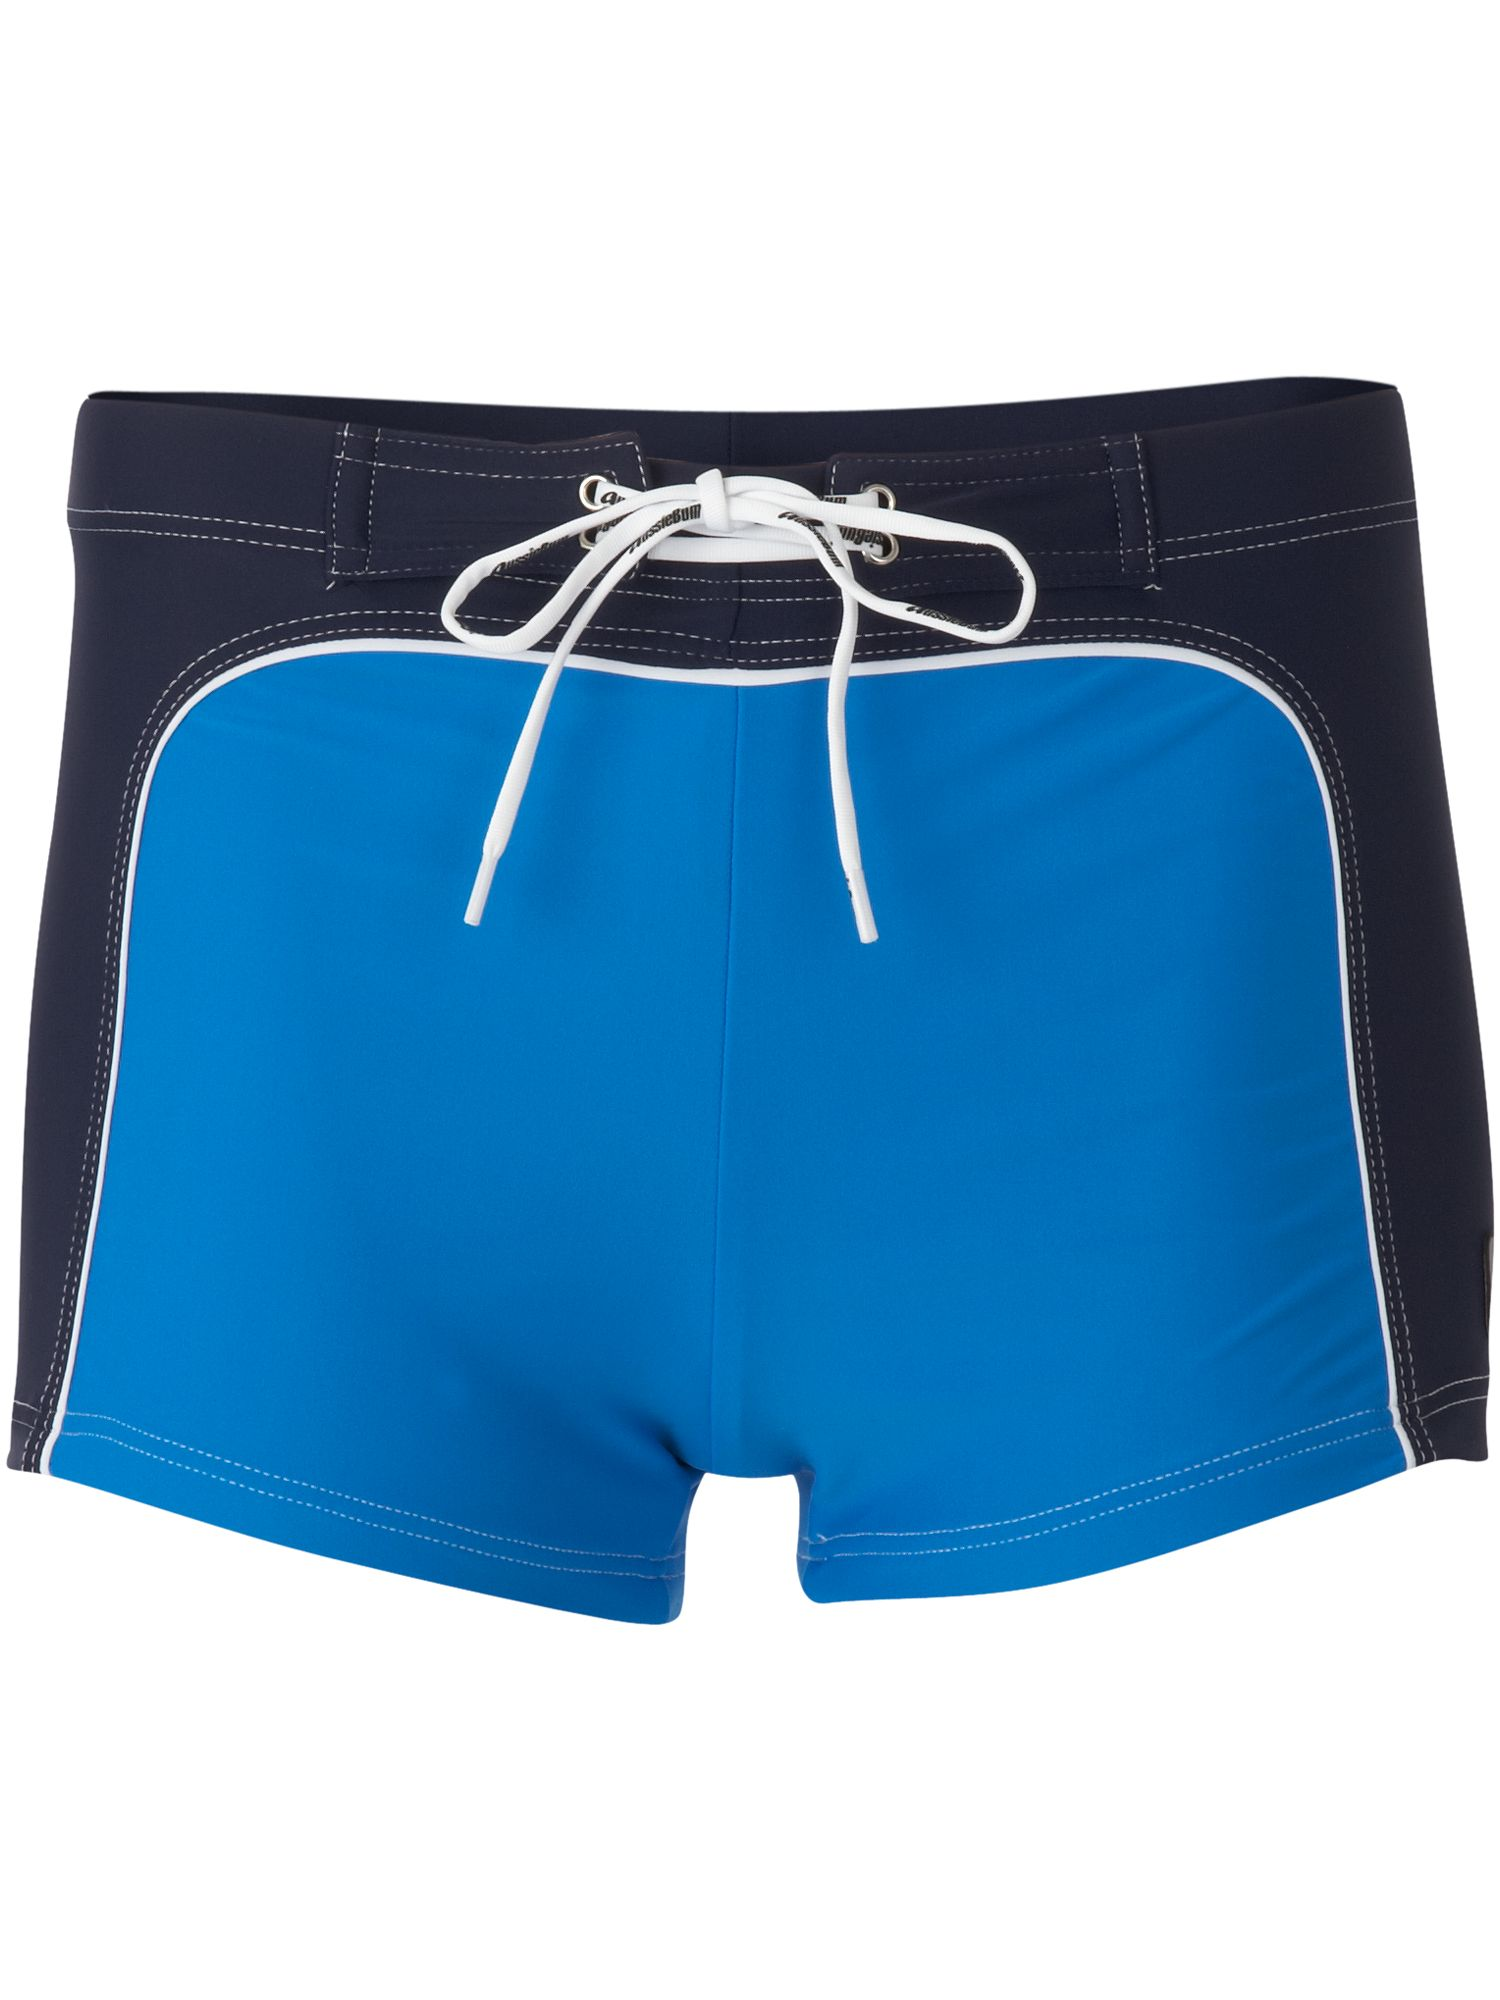 70s contrast colour swim shorts